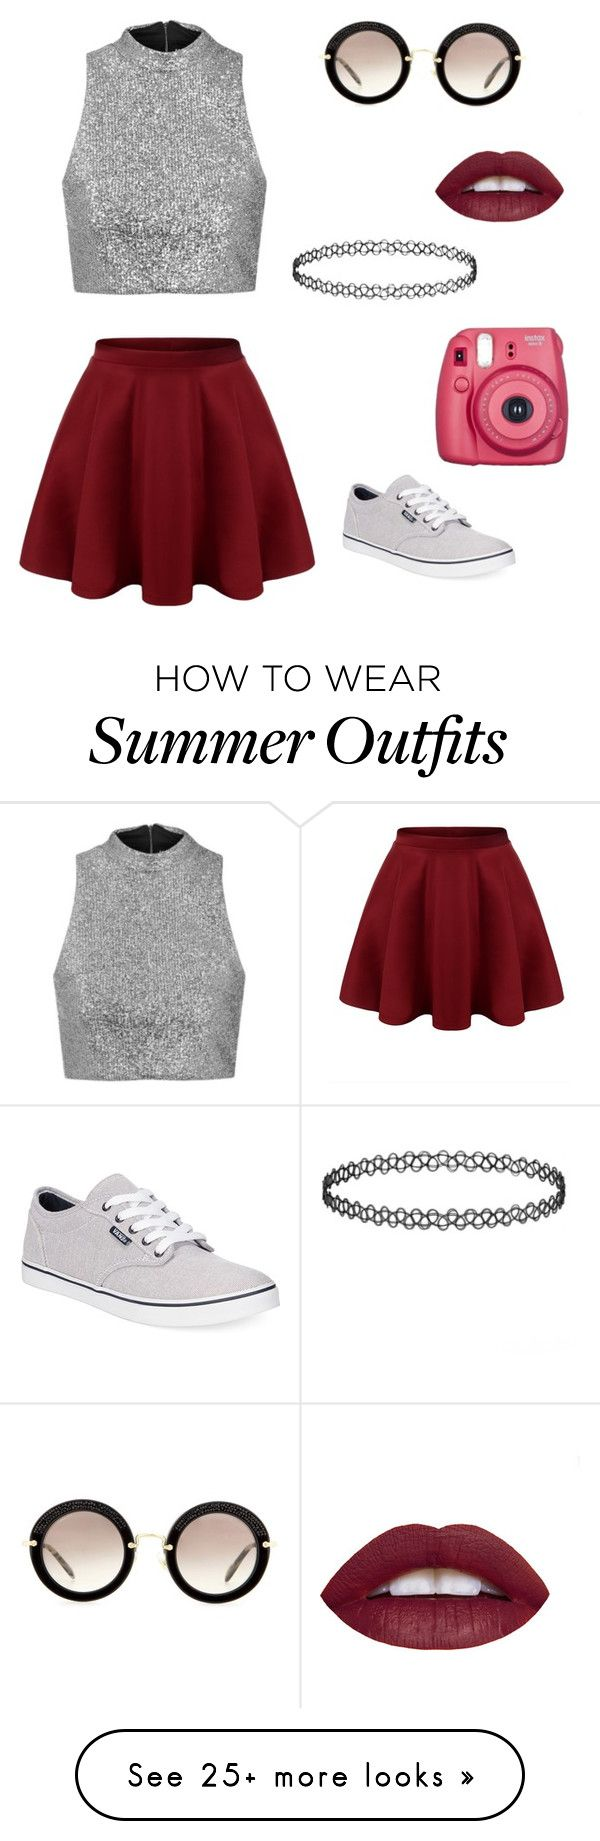 """""""A perfect outfit for a summer day. ❤"""" by setmetrendy on Polyvore featuring Miu Miu, Topshop, Vans, women's clothing, women's fashion, women, female, woman, misses and juniors"""